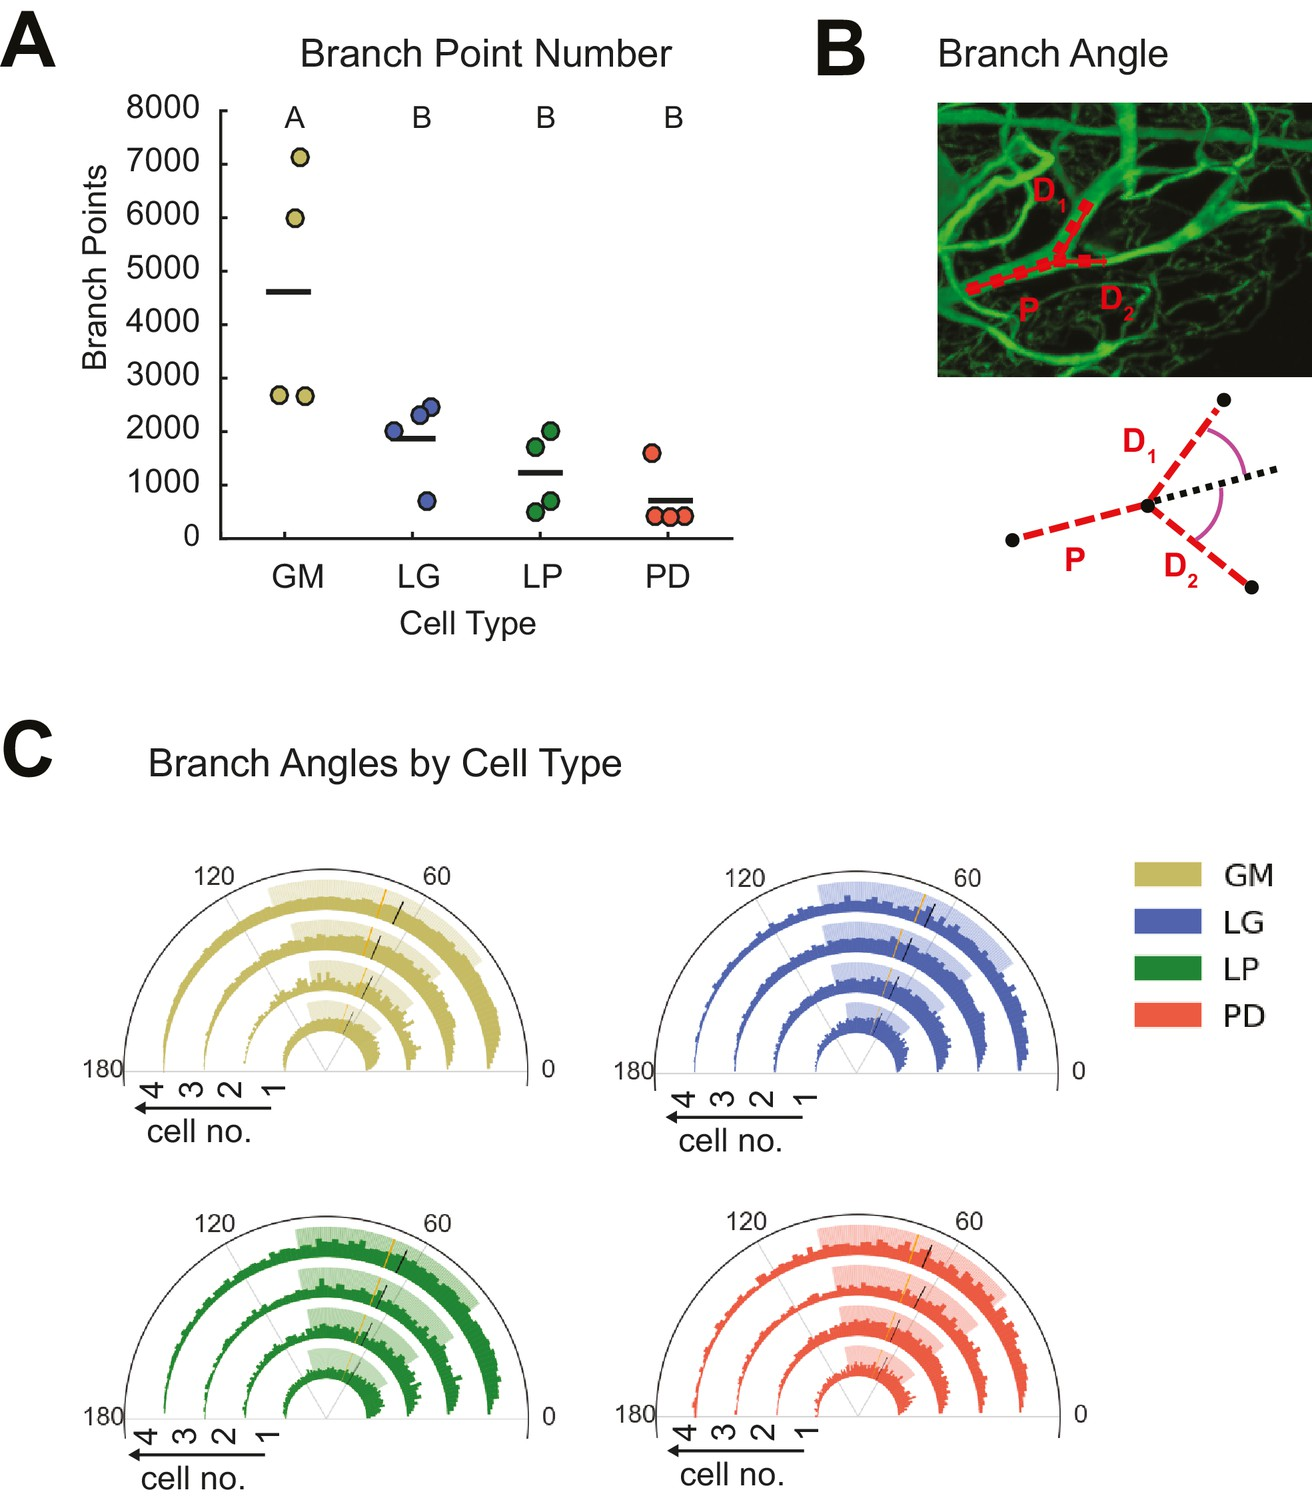 Sloppy Morphological Tuning In Identified Neurons Of The Crustacean 2000 King Road Wiring Diagram Stg Present Variable Branch Point Numbers And Angles